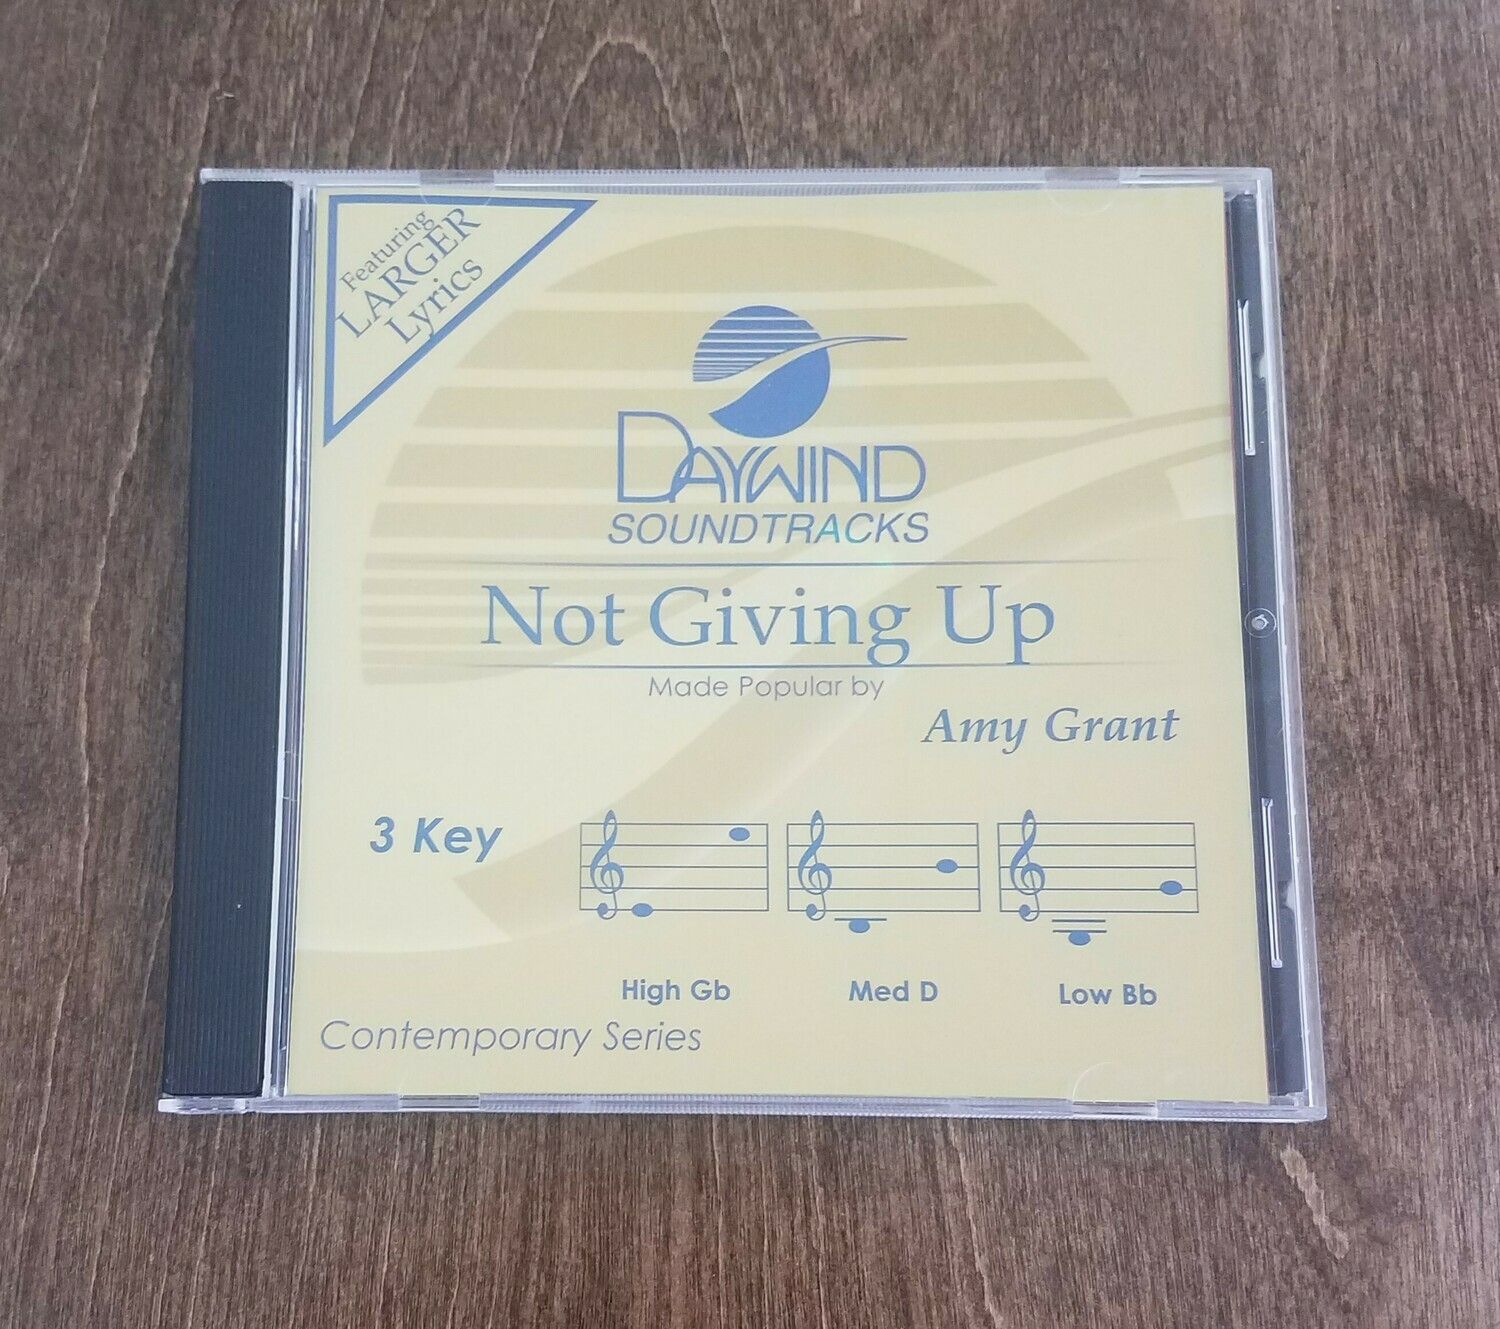 Not Giving Up CD